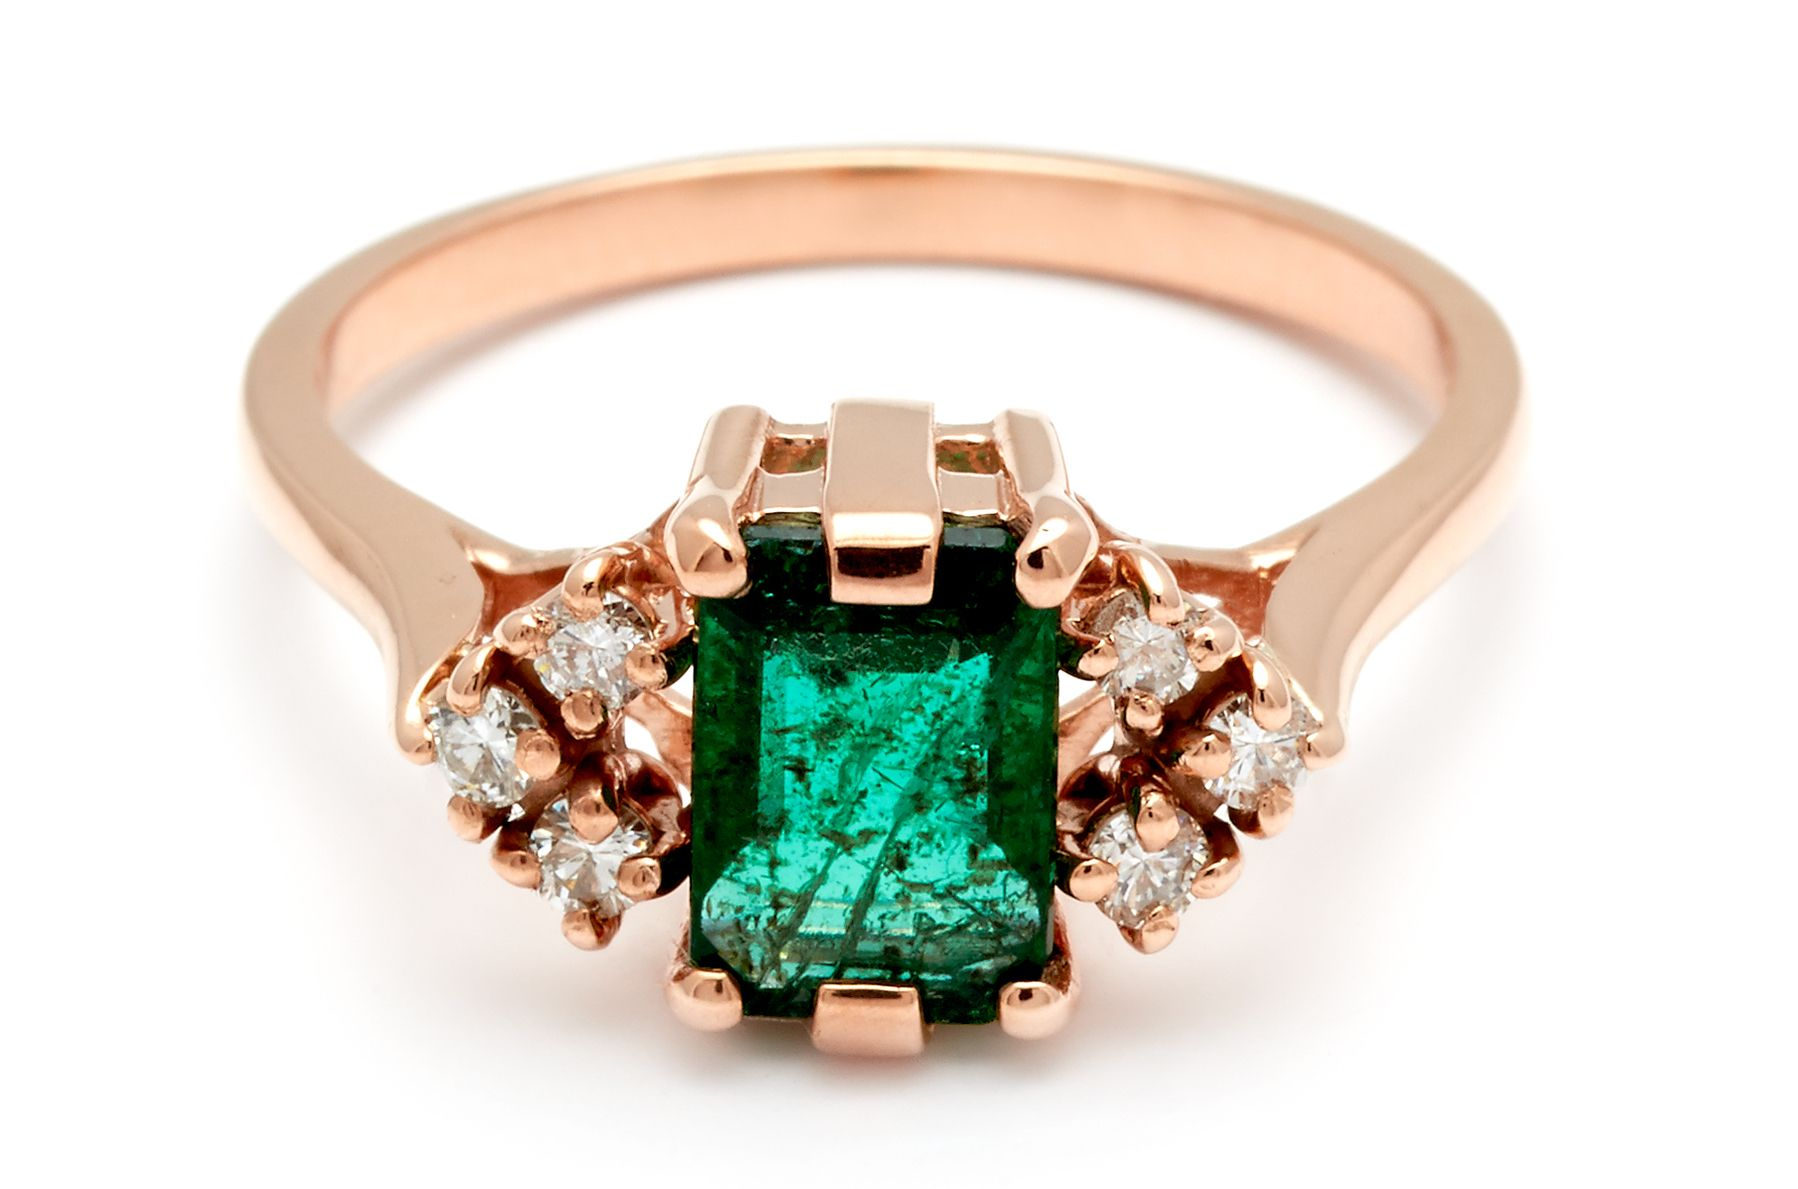 sparta emerald rings anniversary diamond wedding image shaped cut set engagement ring pear